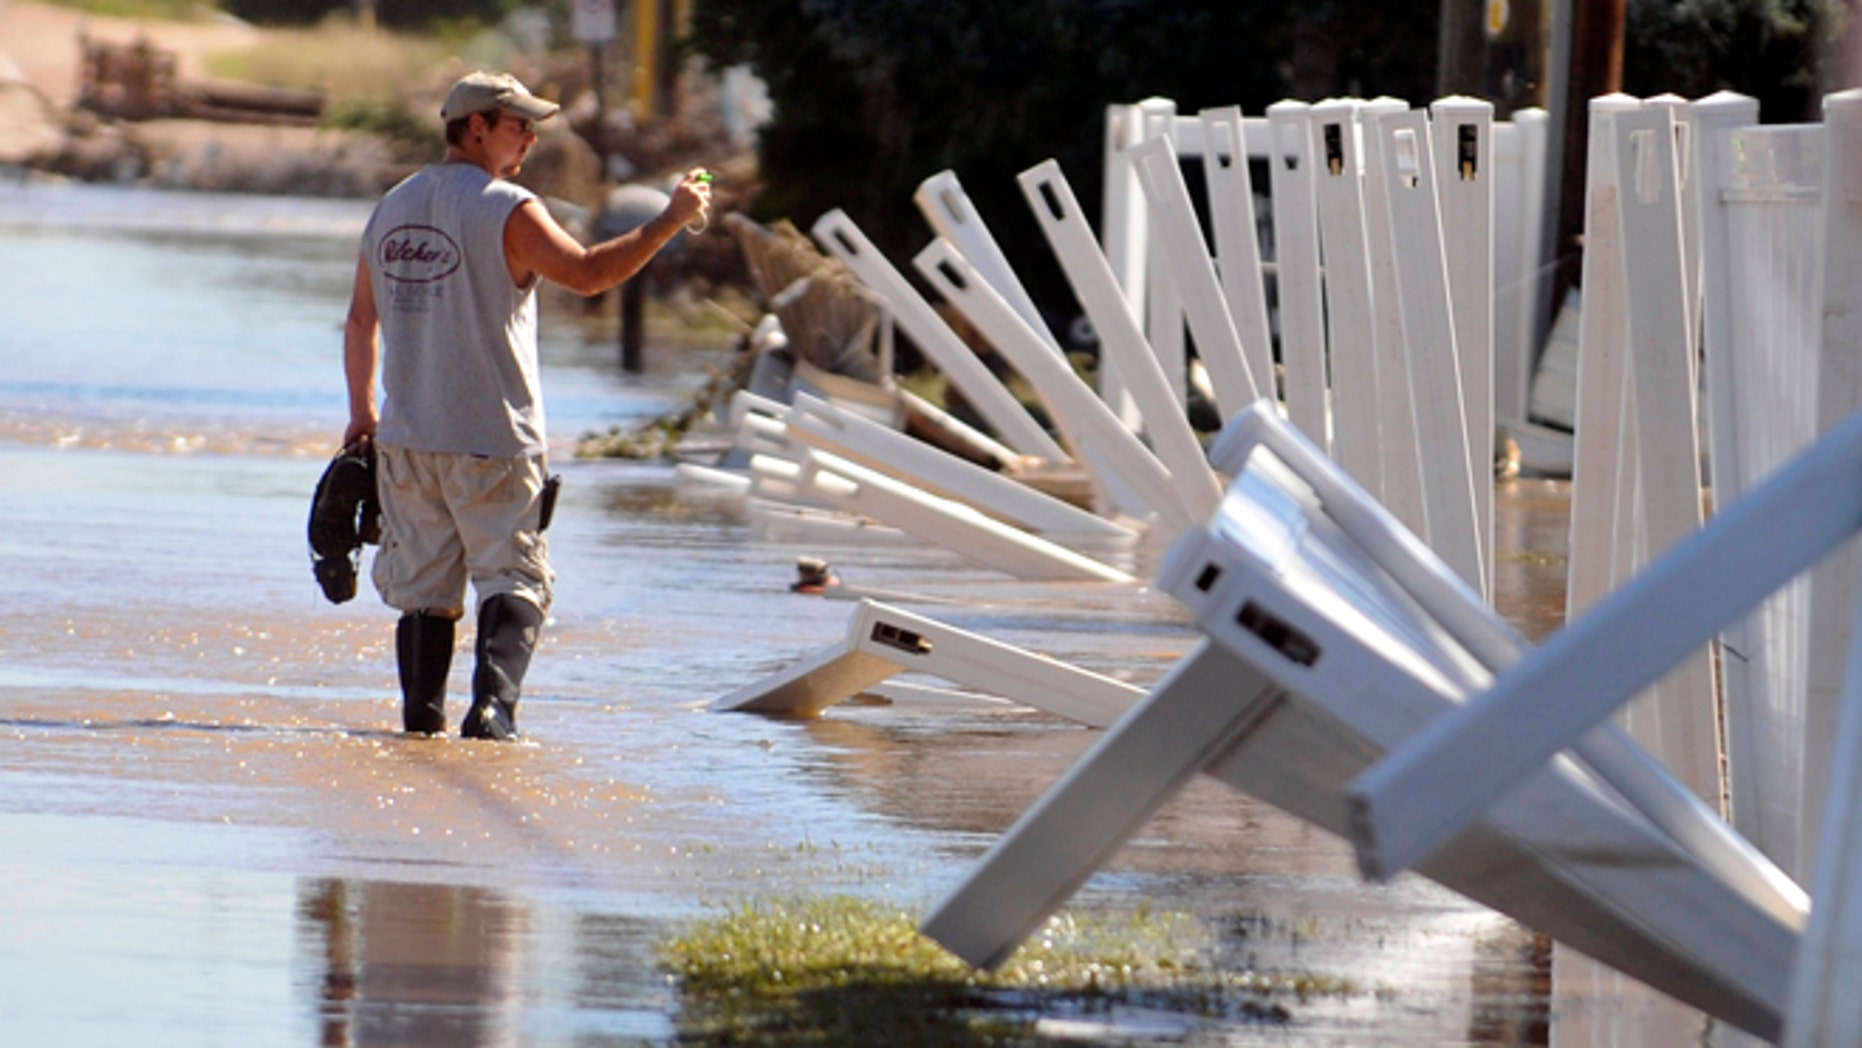 A man wades through the flood waters Sept. 18, 2013 in Evans, Colo. Residents are advised to wash everything that comes in contact with the water. (AP Photo/The Greeley Tribune, Joshua Polson)